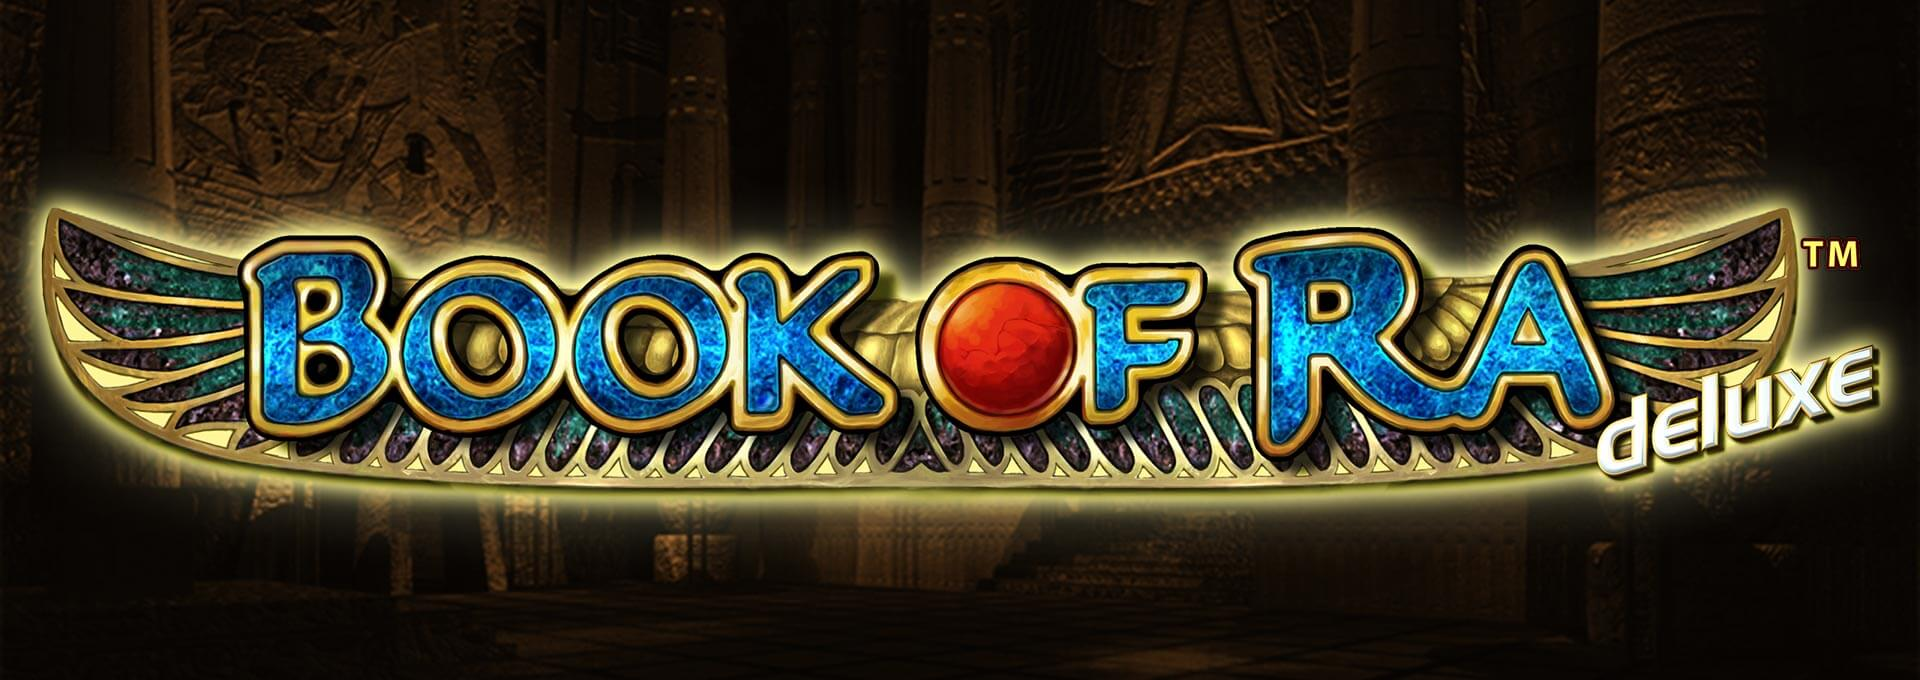 grand casino online book of ra deluxe demo